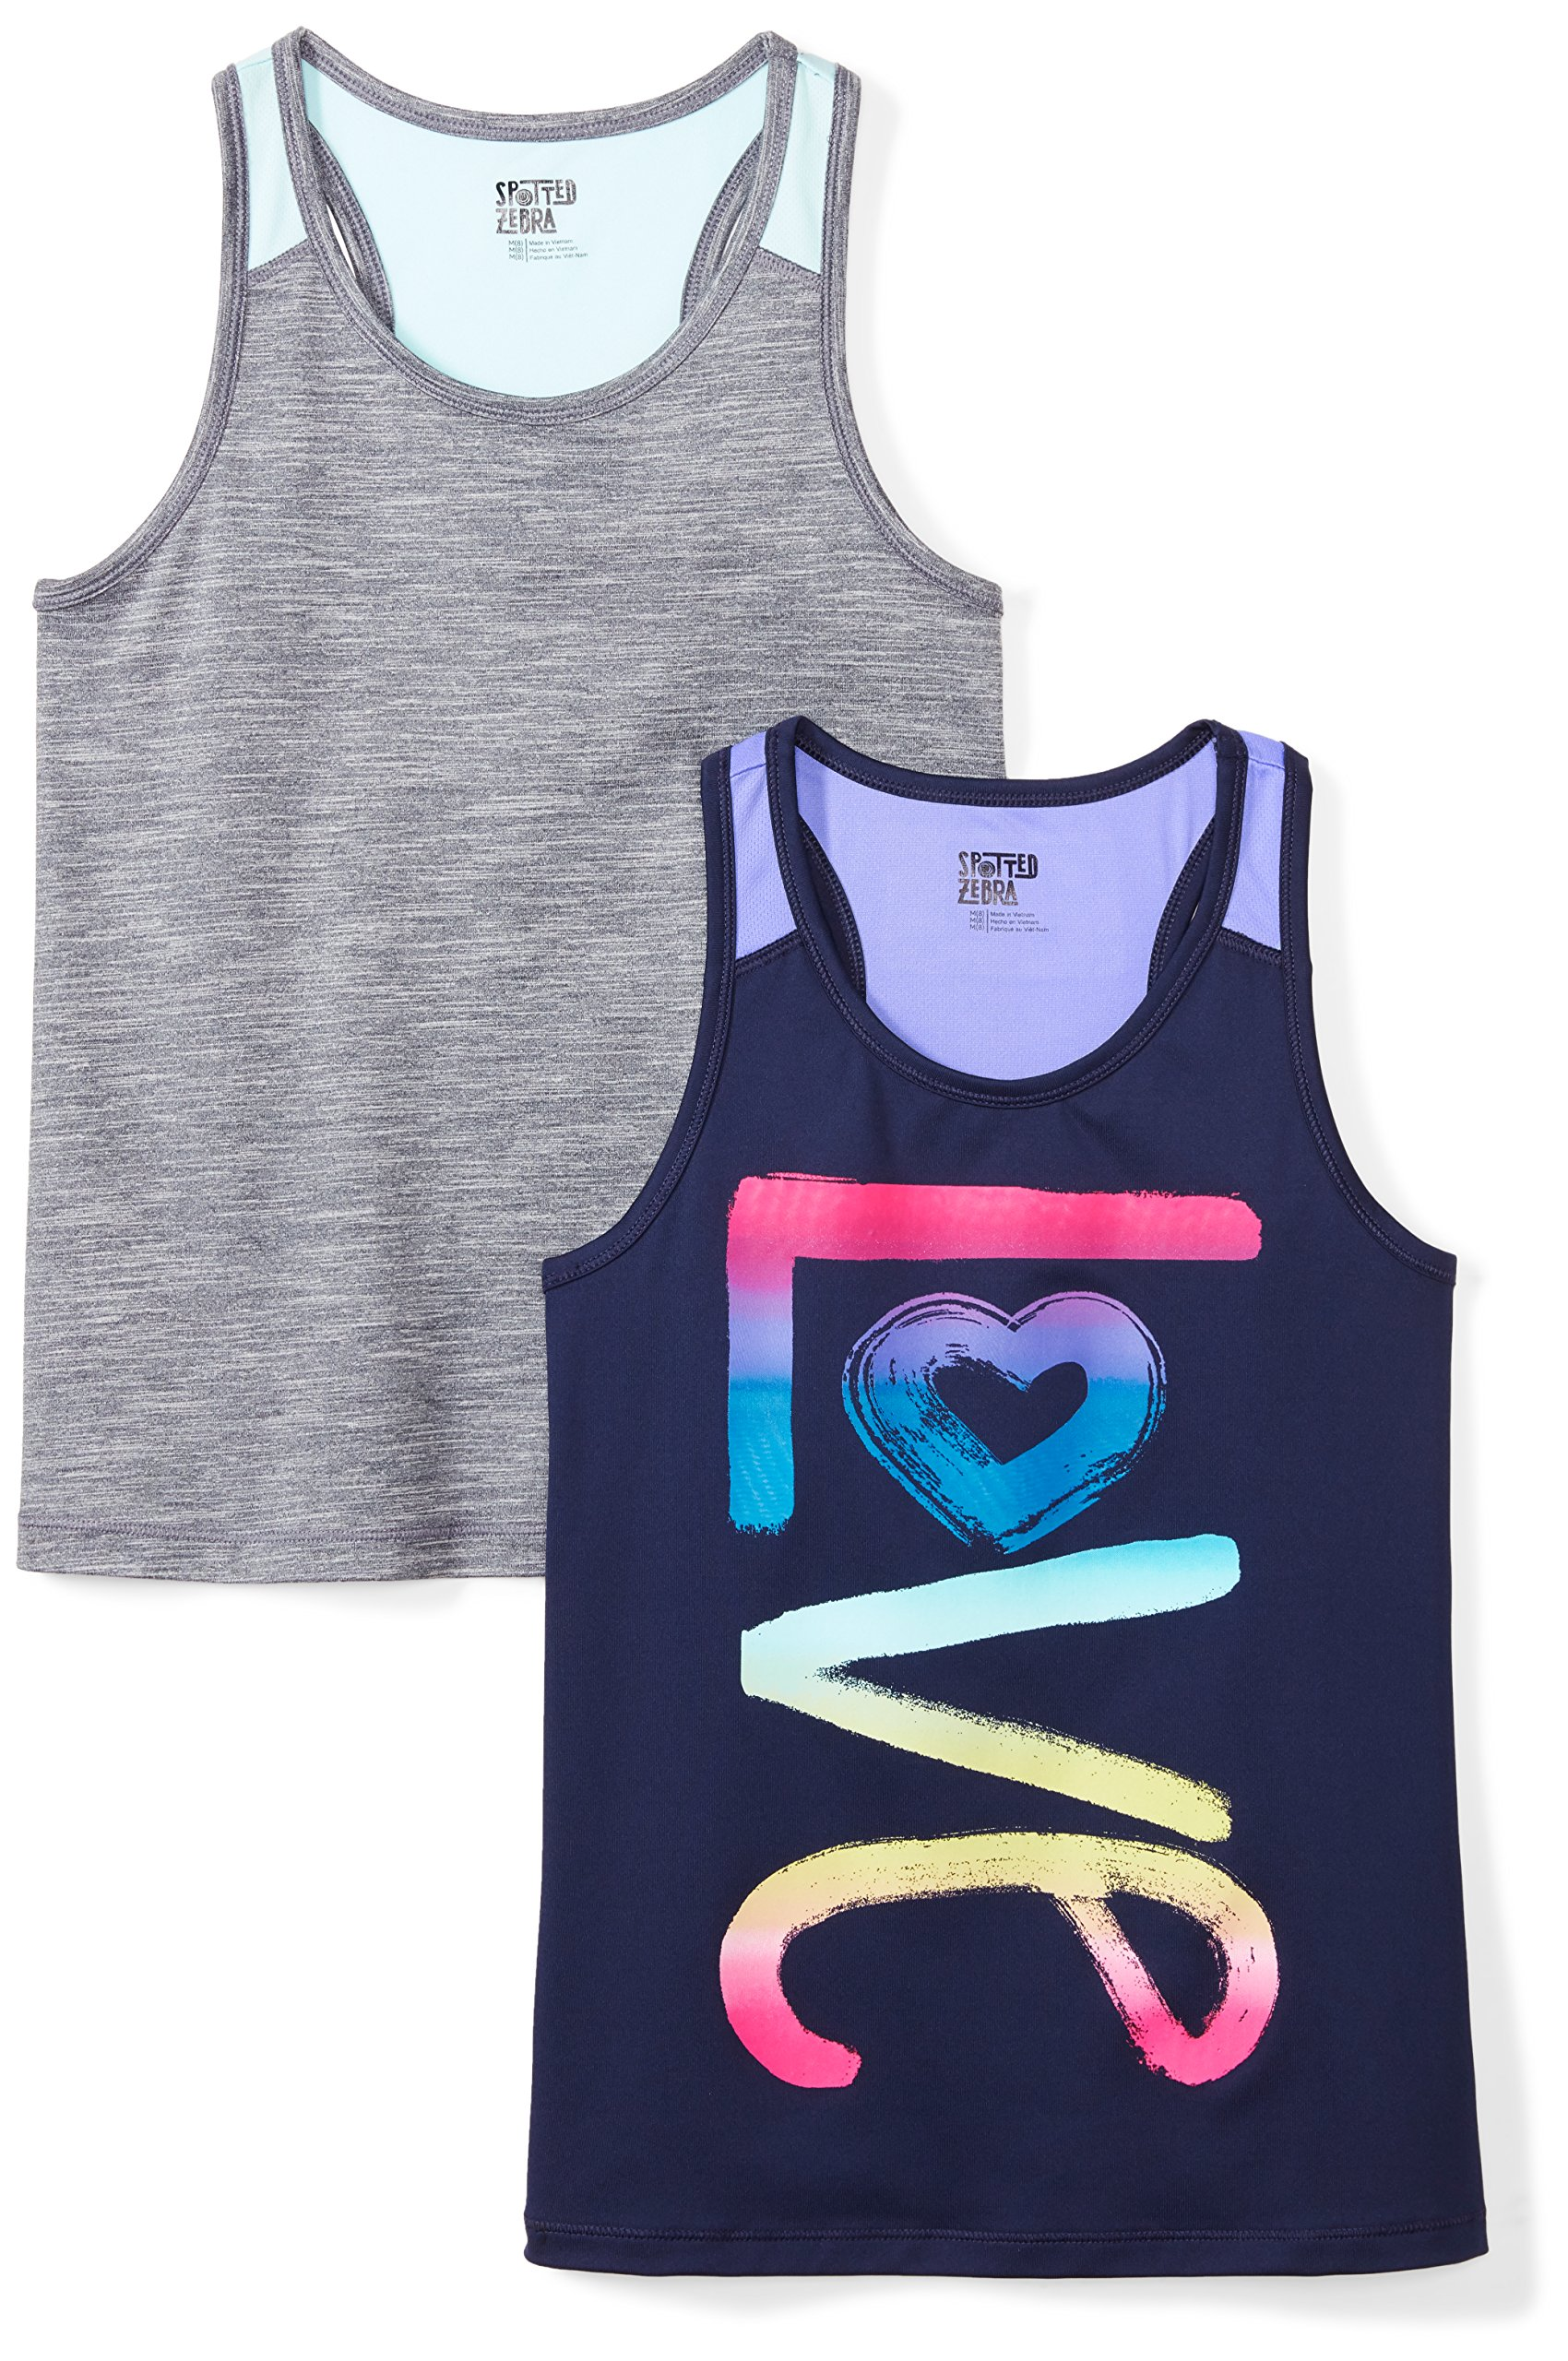 Spotted Zebra Girls' Little 2-Pack Active Tank Tops, Love, Small (6-7)